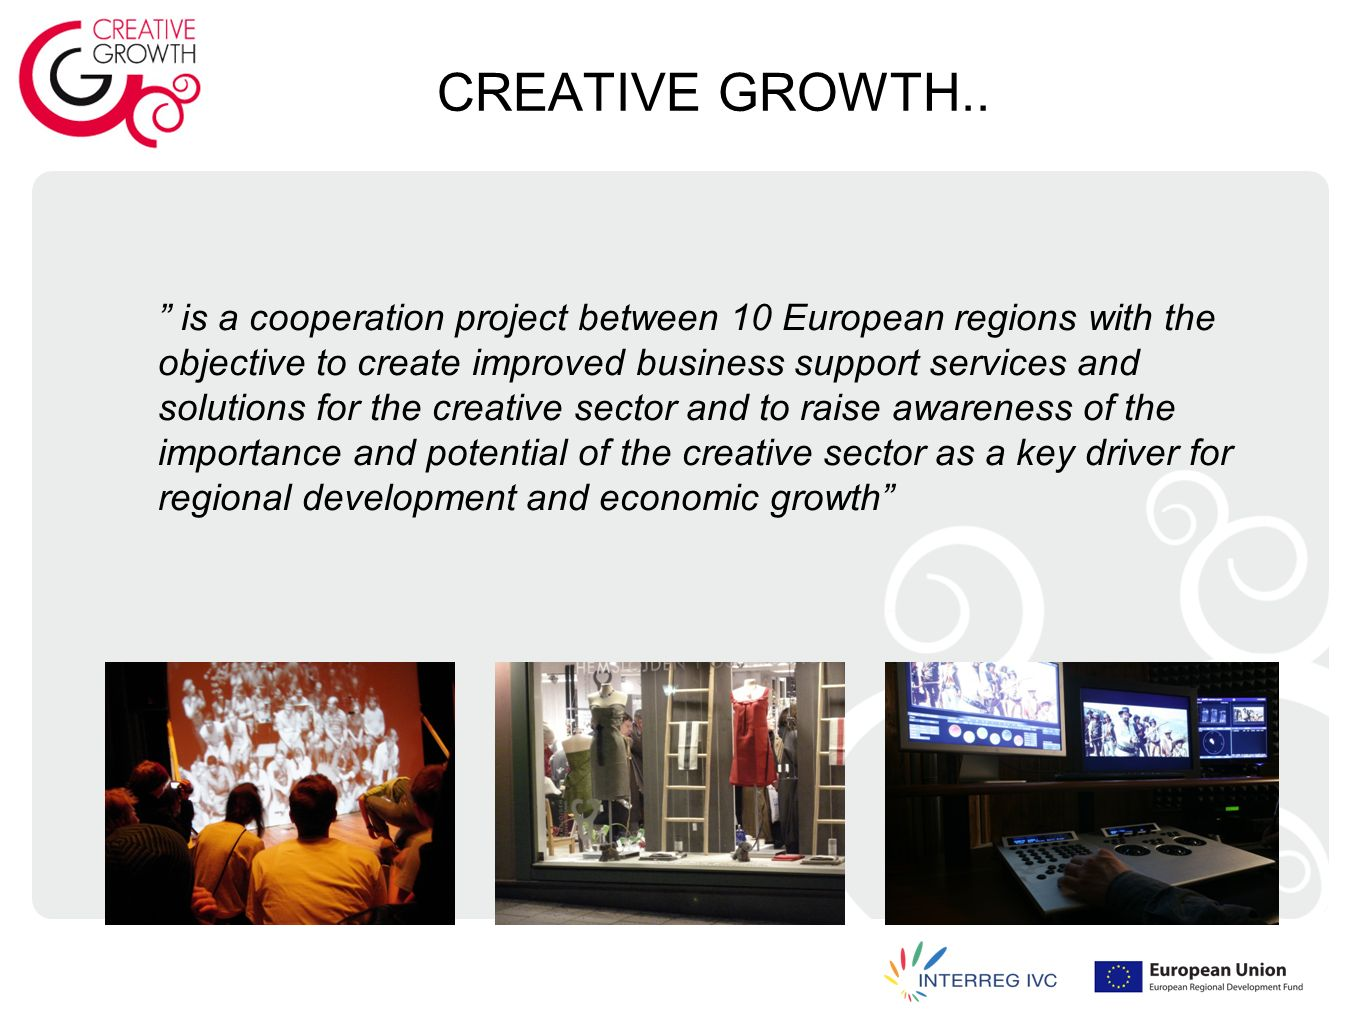 CREATIVE GROWTH.. is a cooperation project between 10 European regions with the objective to create improved business support services and solutions f